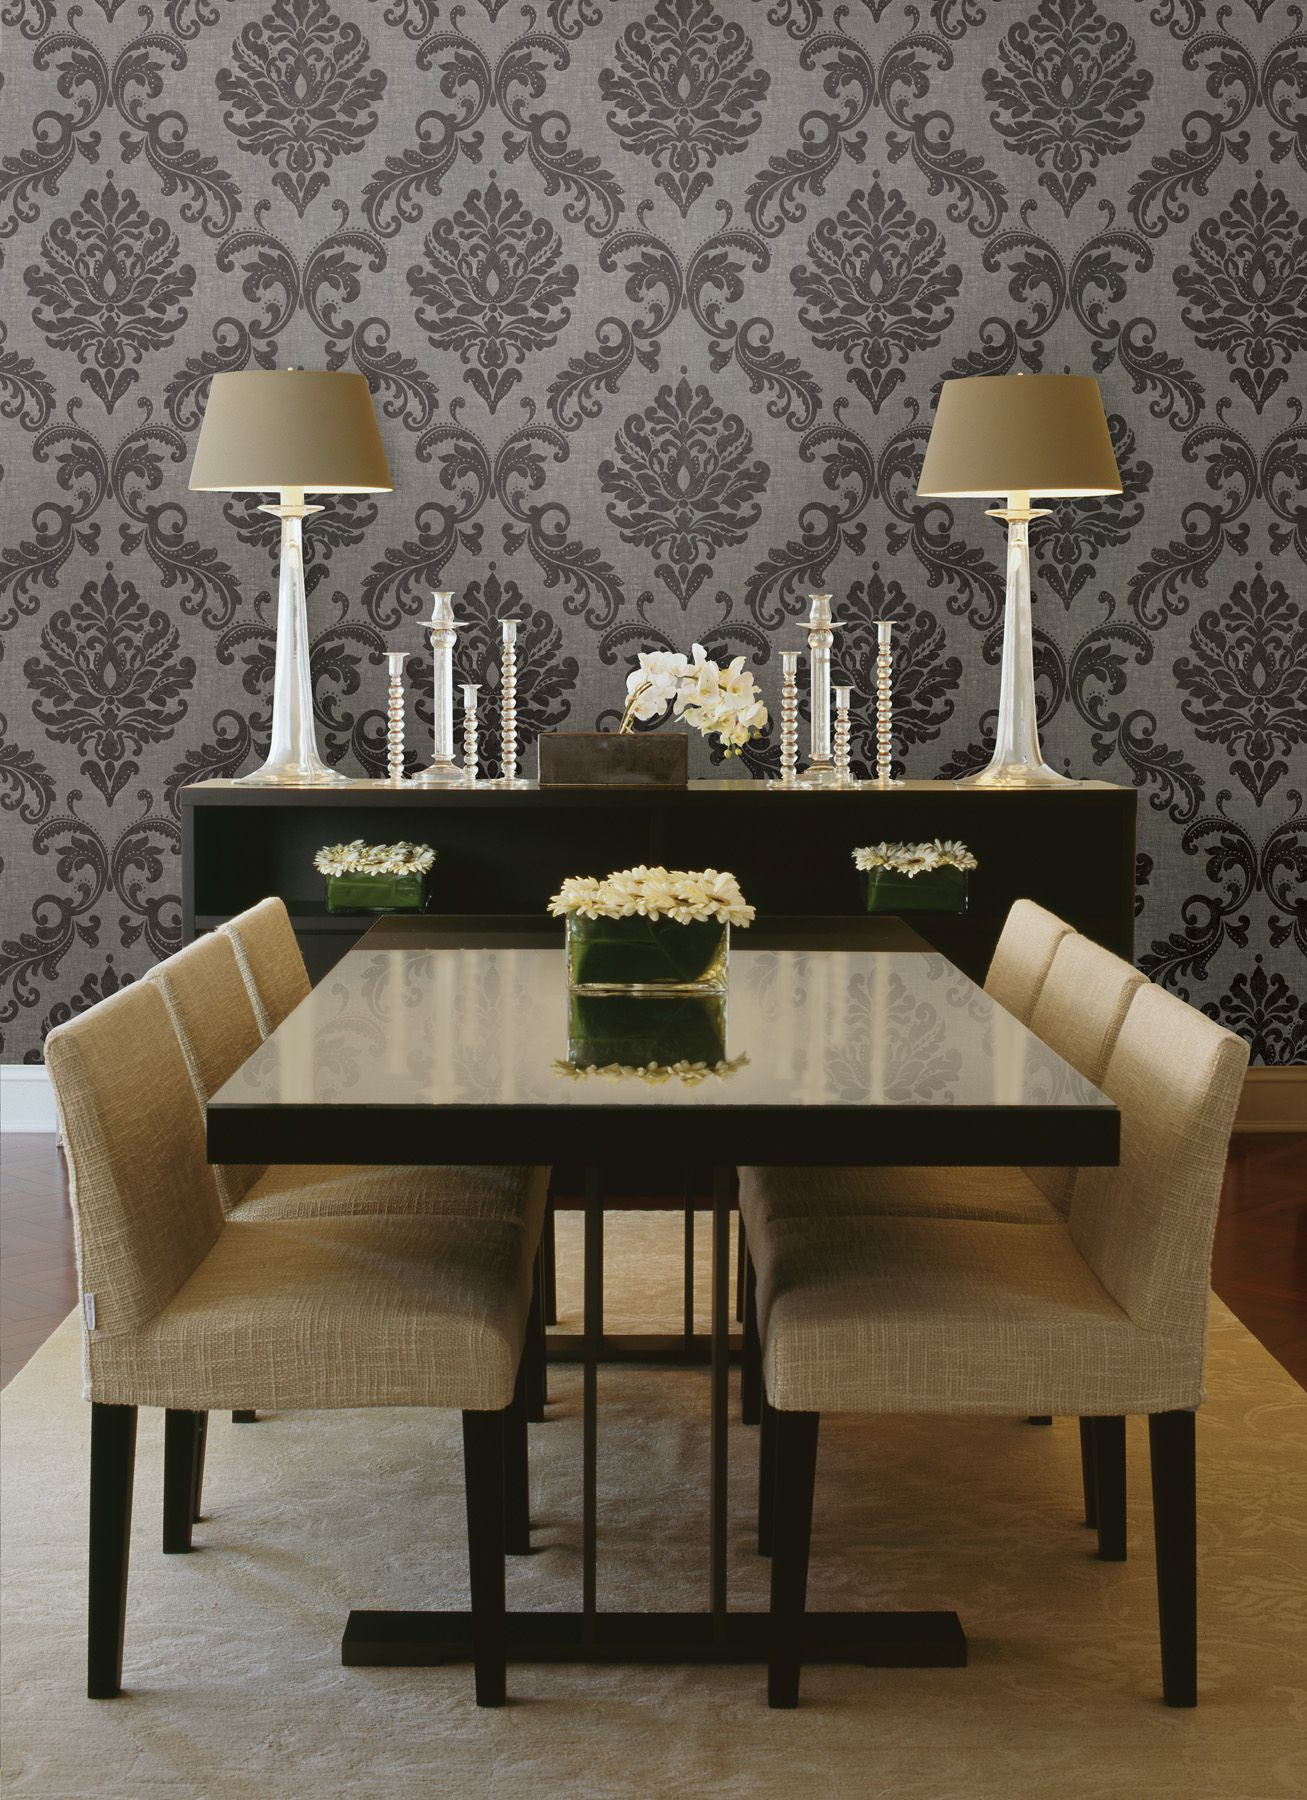 Gorgeous Formal Dining Room Decor Idea With A Damask Wallpaper Feature Wall